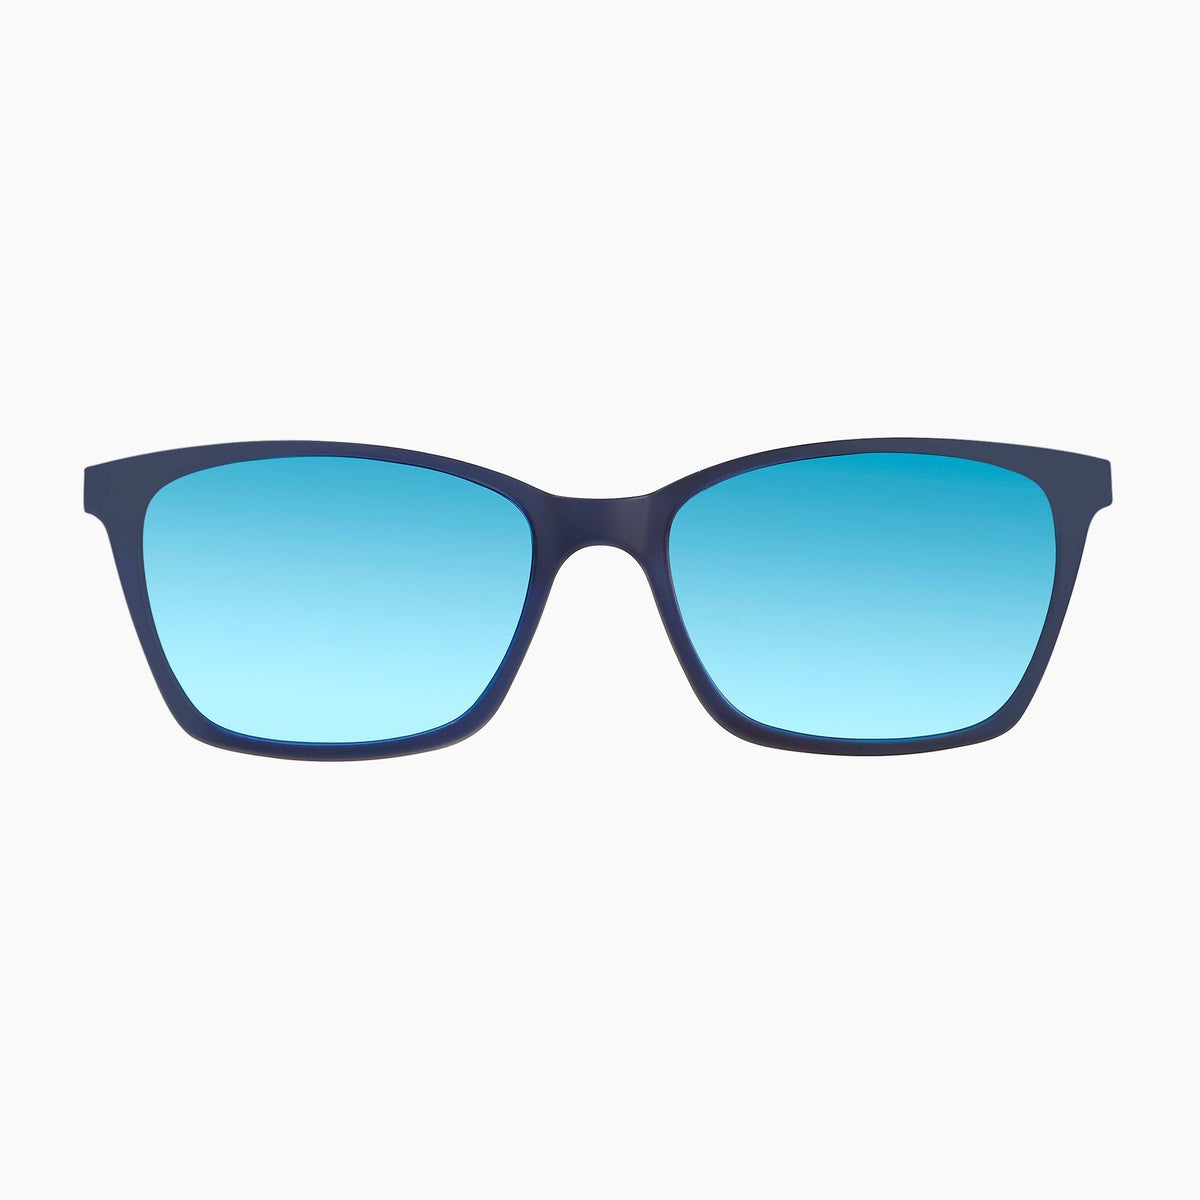 Light Blue / Turquoise mirror lens